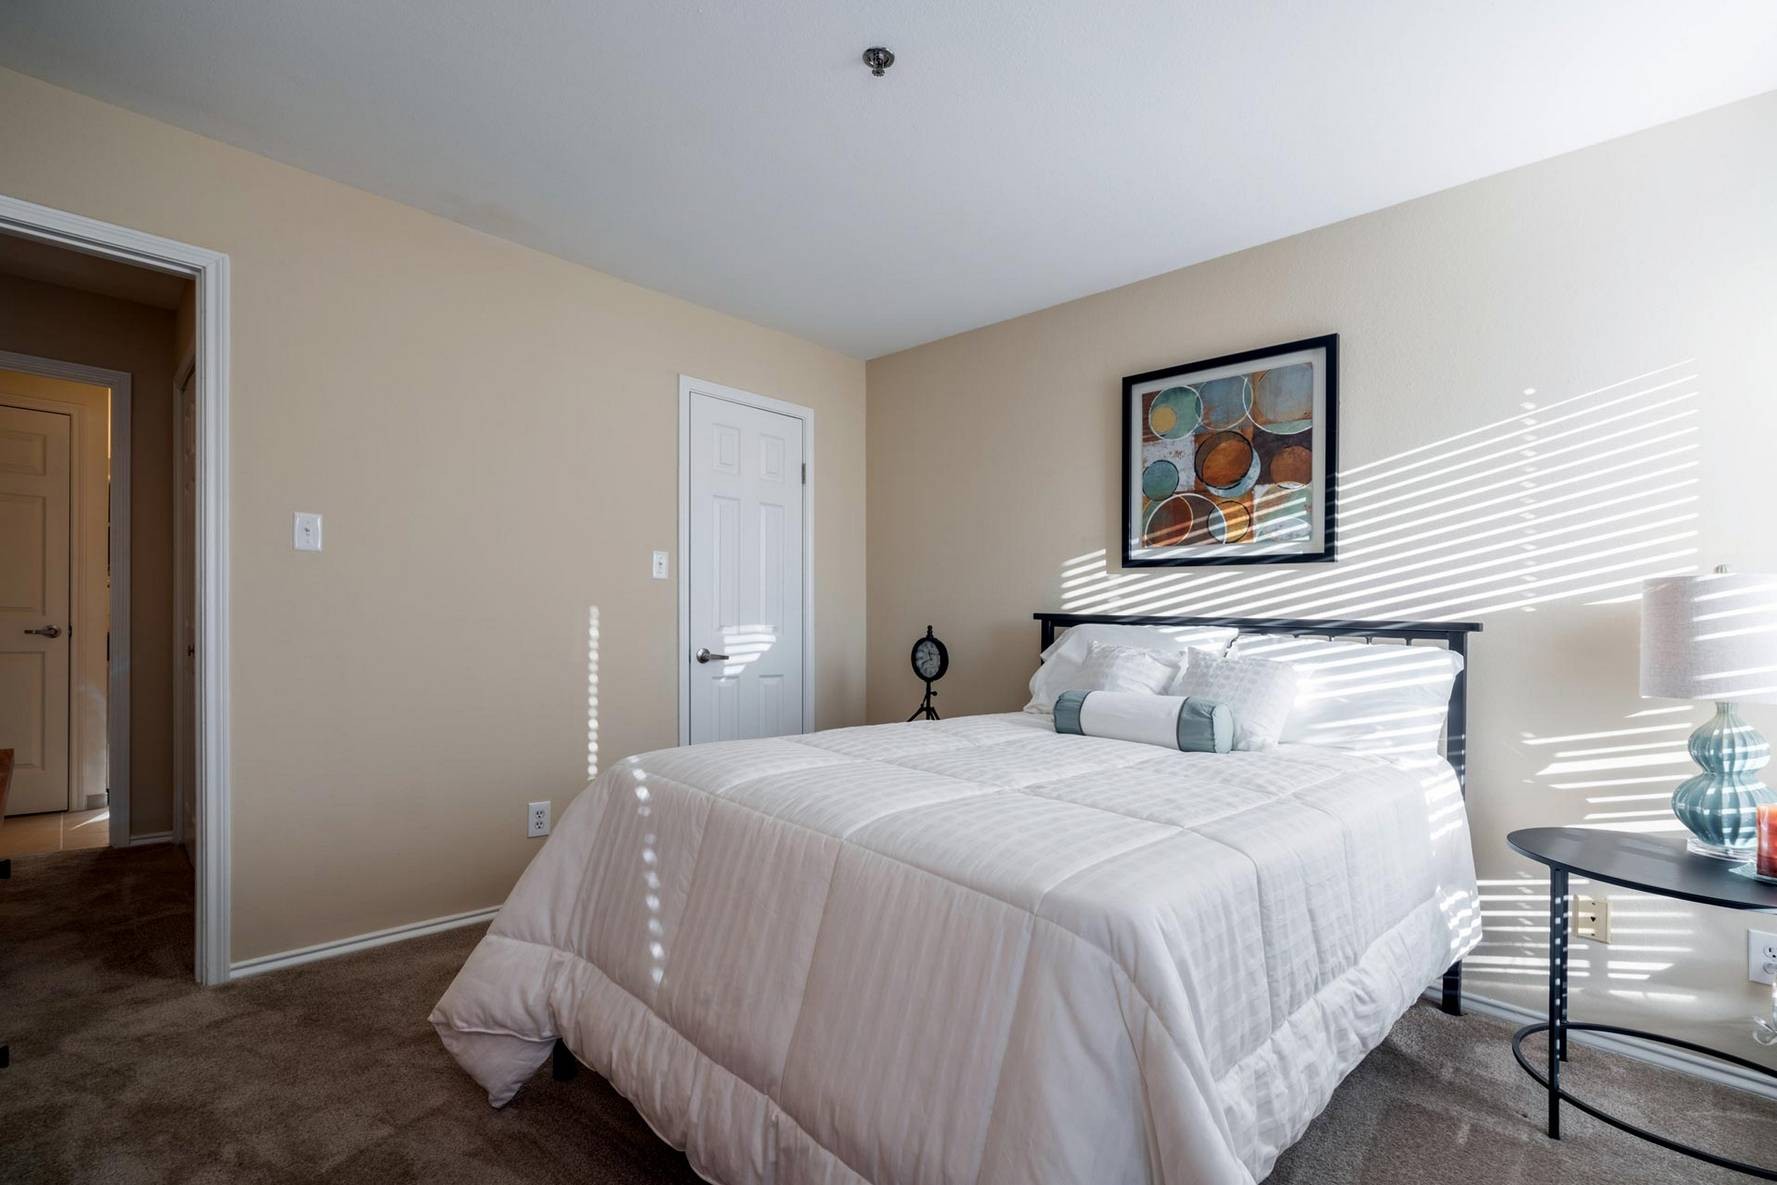 resident bedroom with white bedding